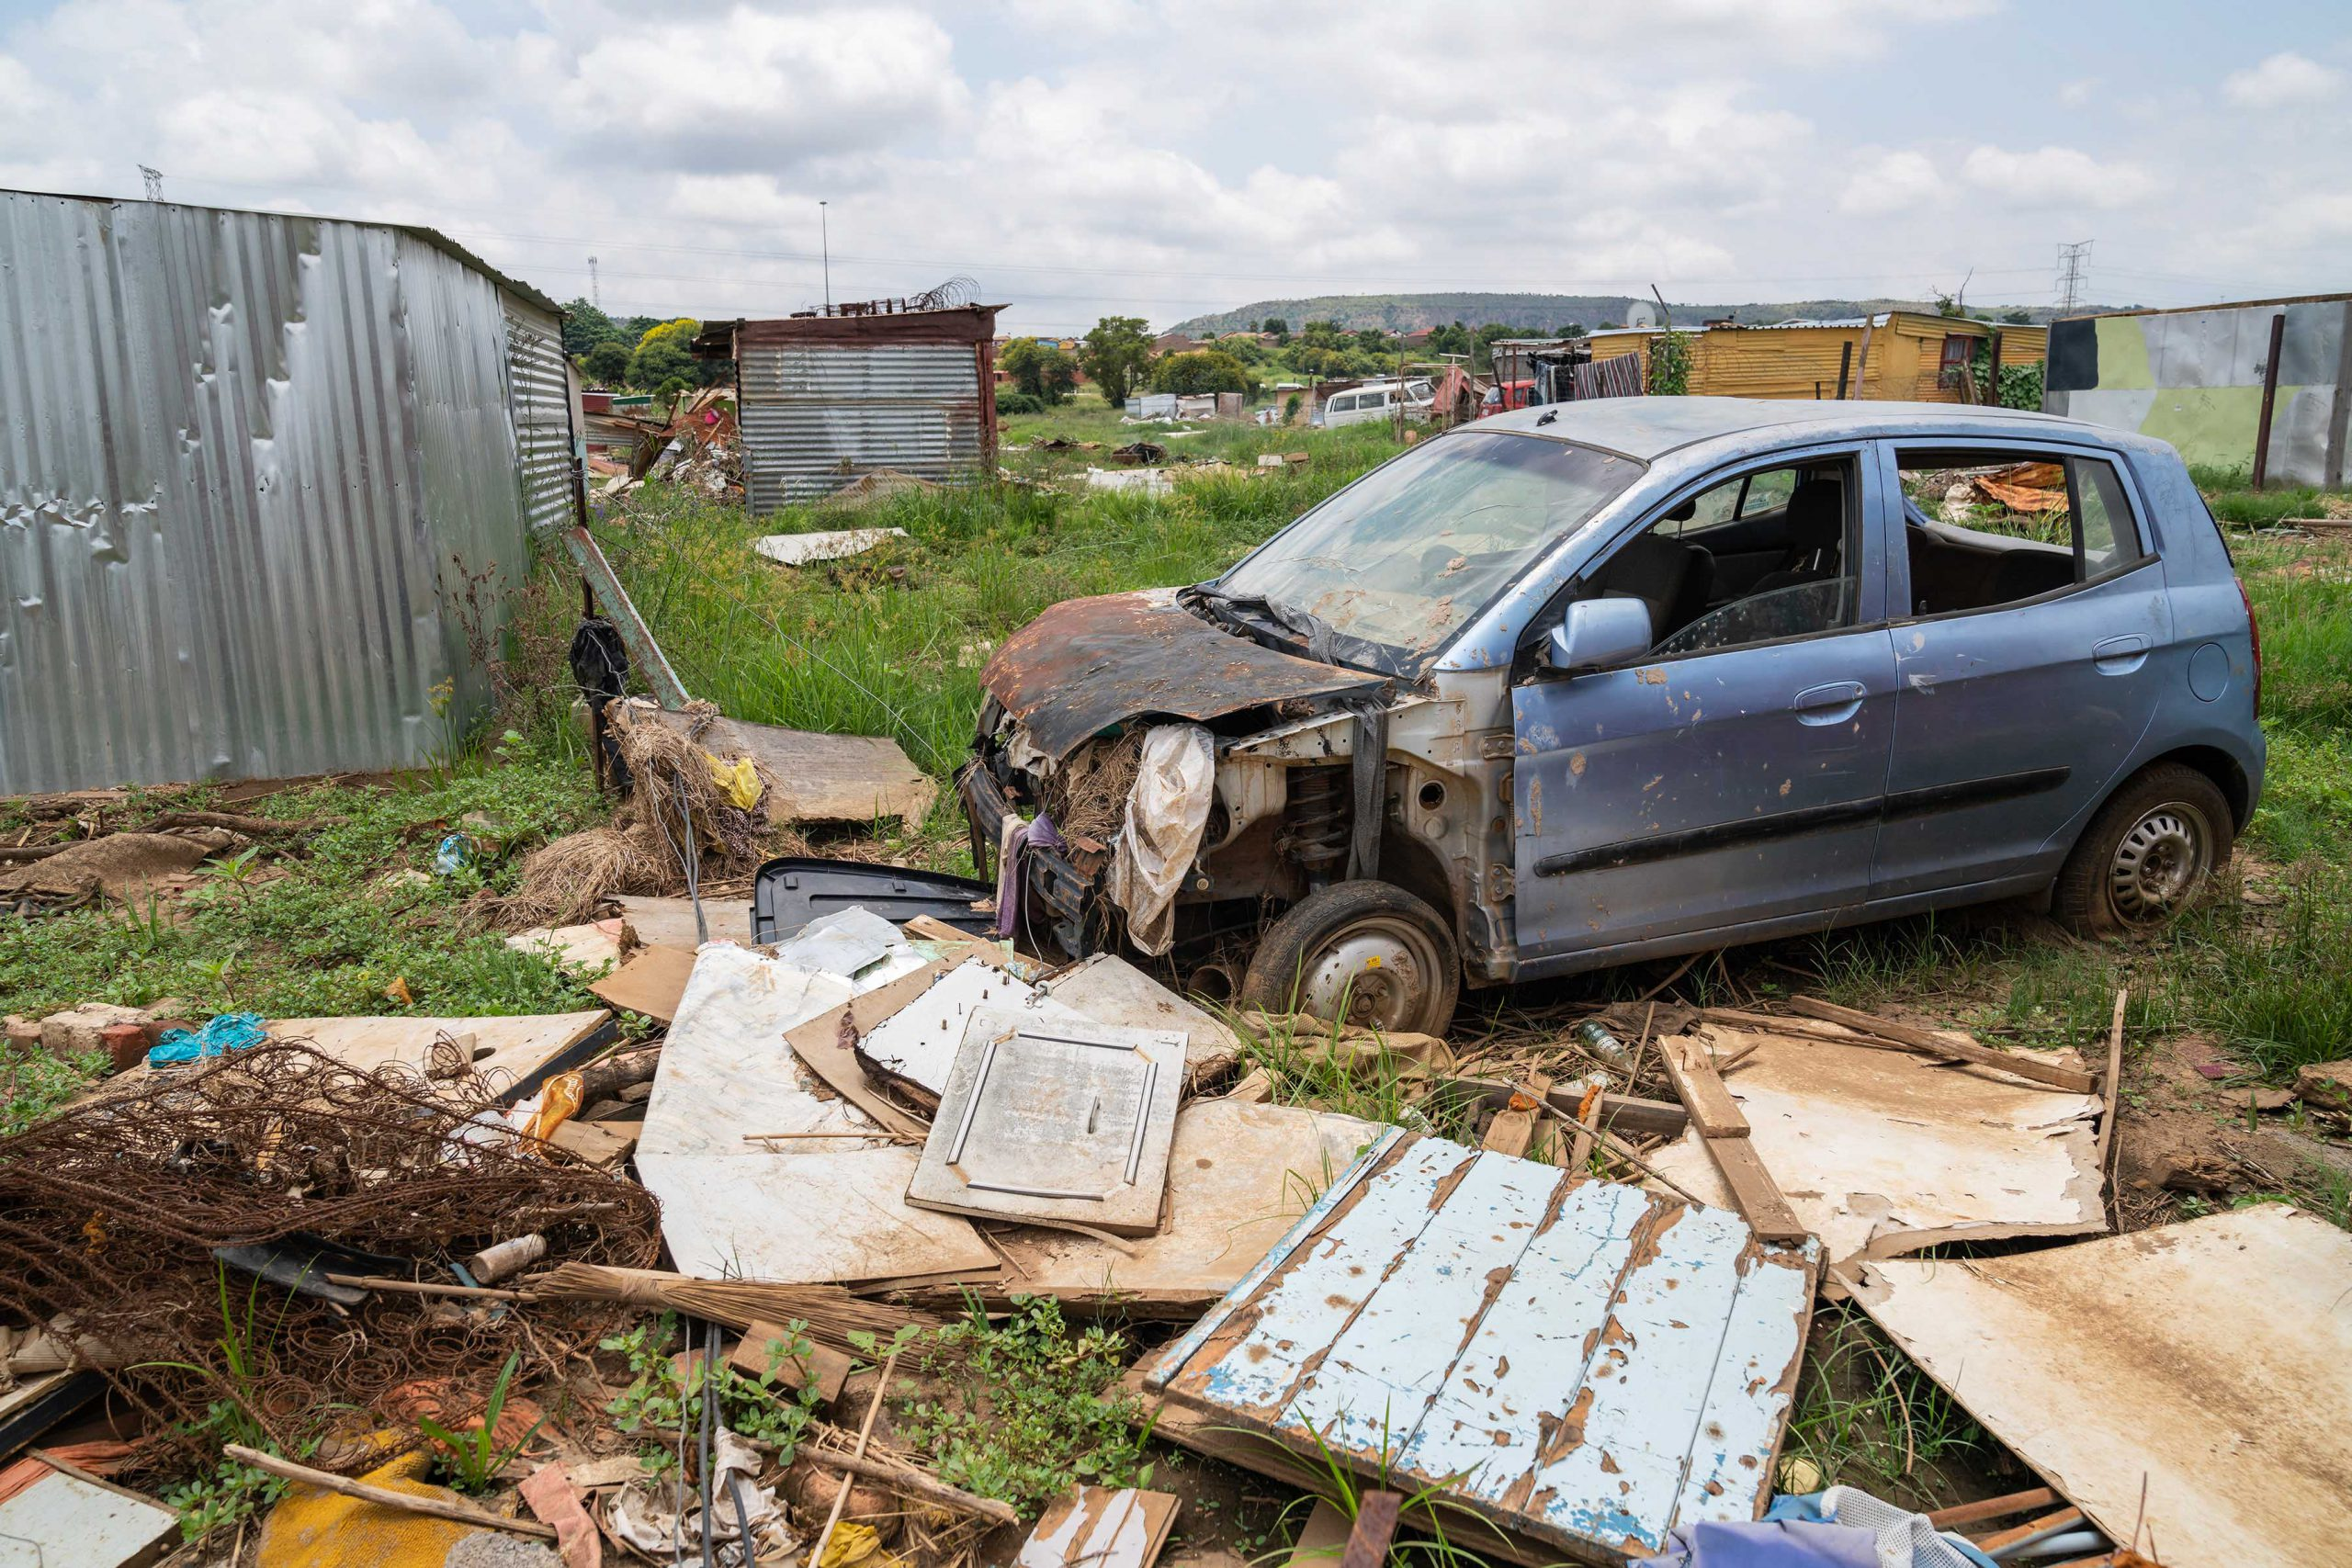 21 January 2020: A car that was swept away and damaged by flood waters from the nearby Moretele river that surged through the Seven Seven shack settlement in December last year.